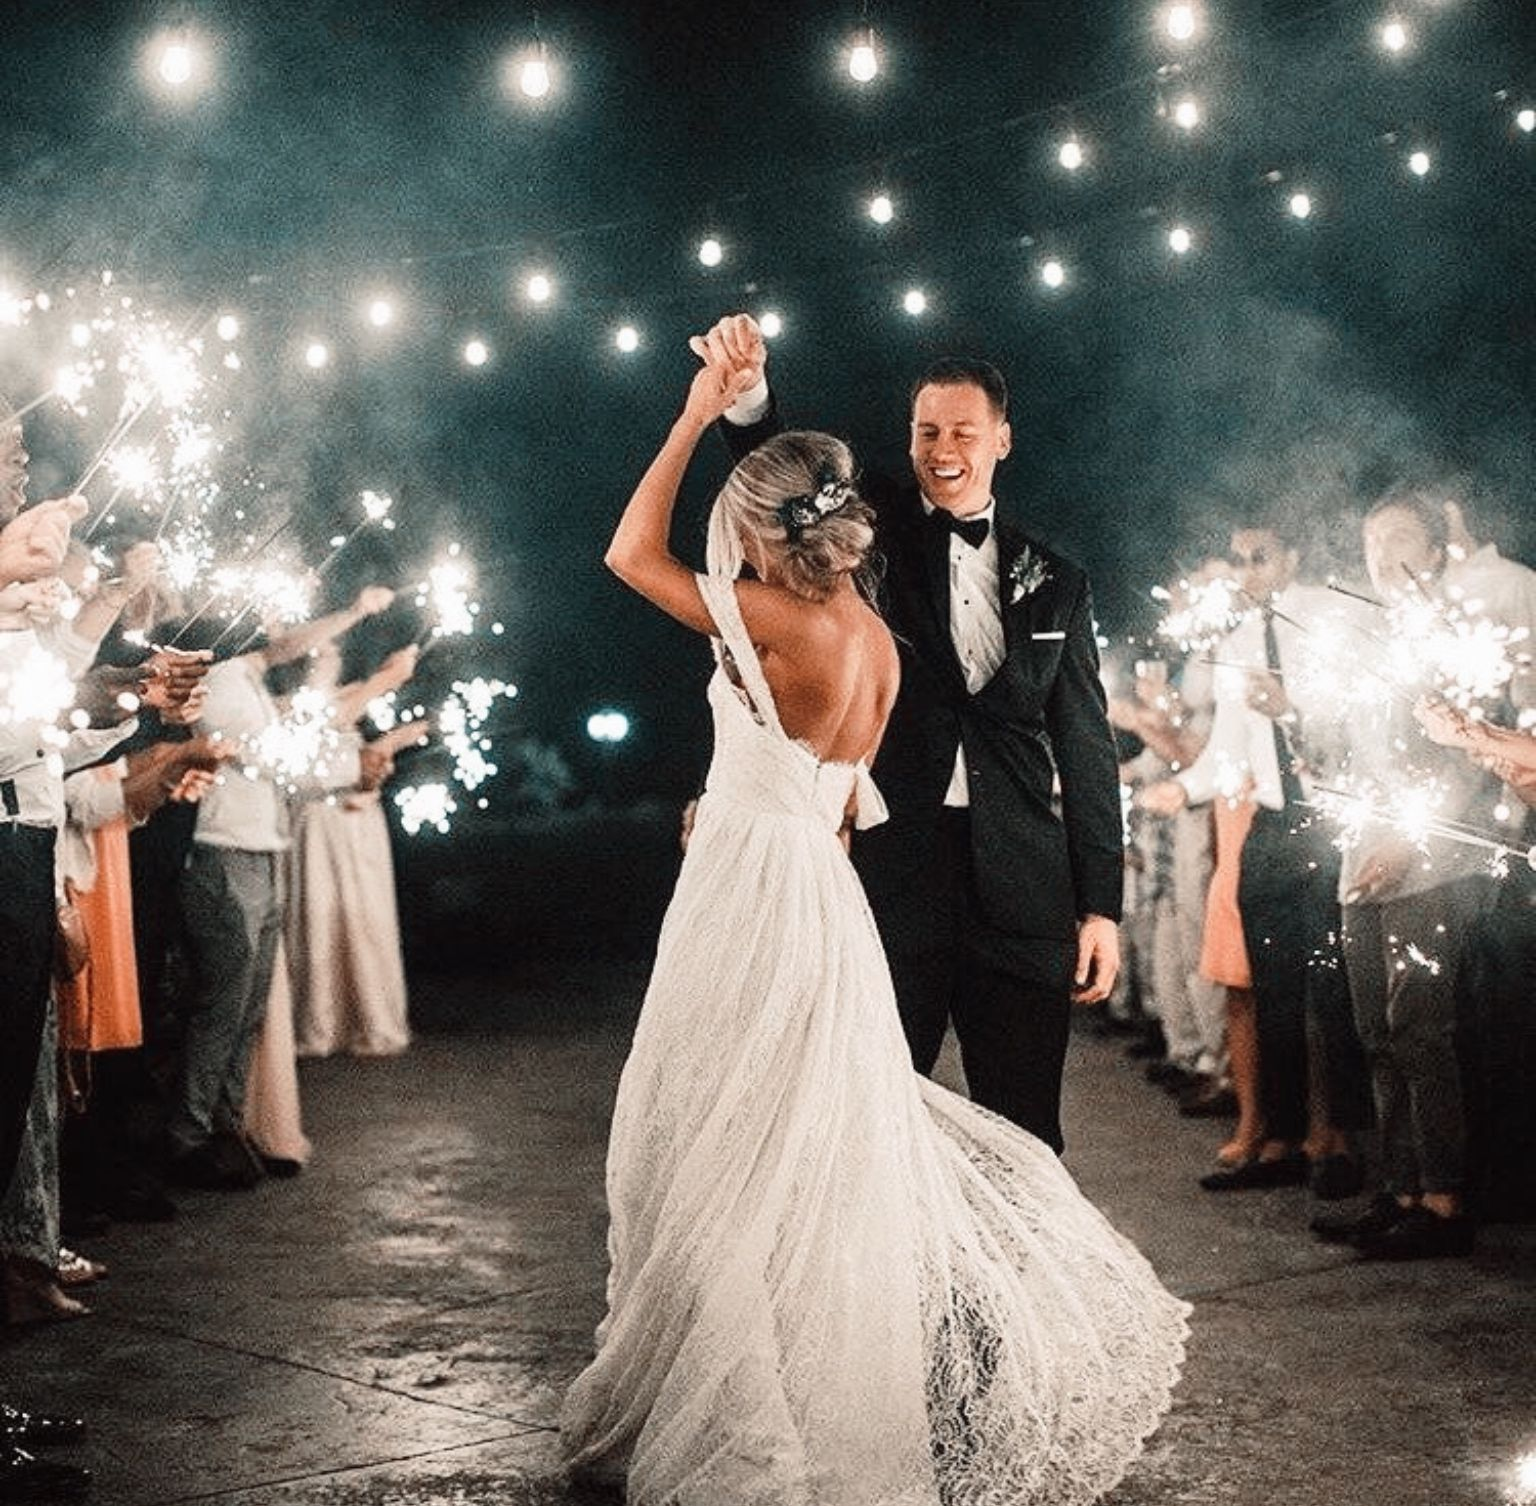 Wedding Dance At The Altar: Pin By Banana :) On Wedding In 2019